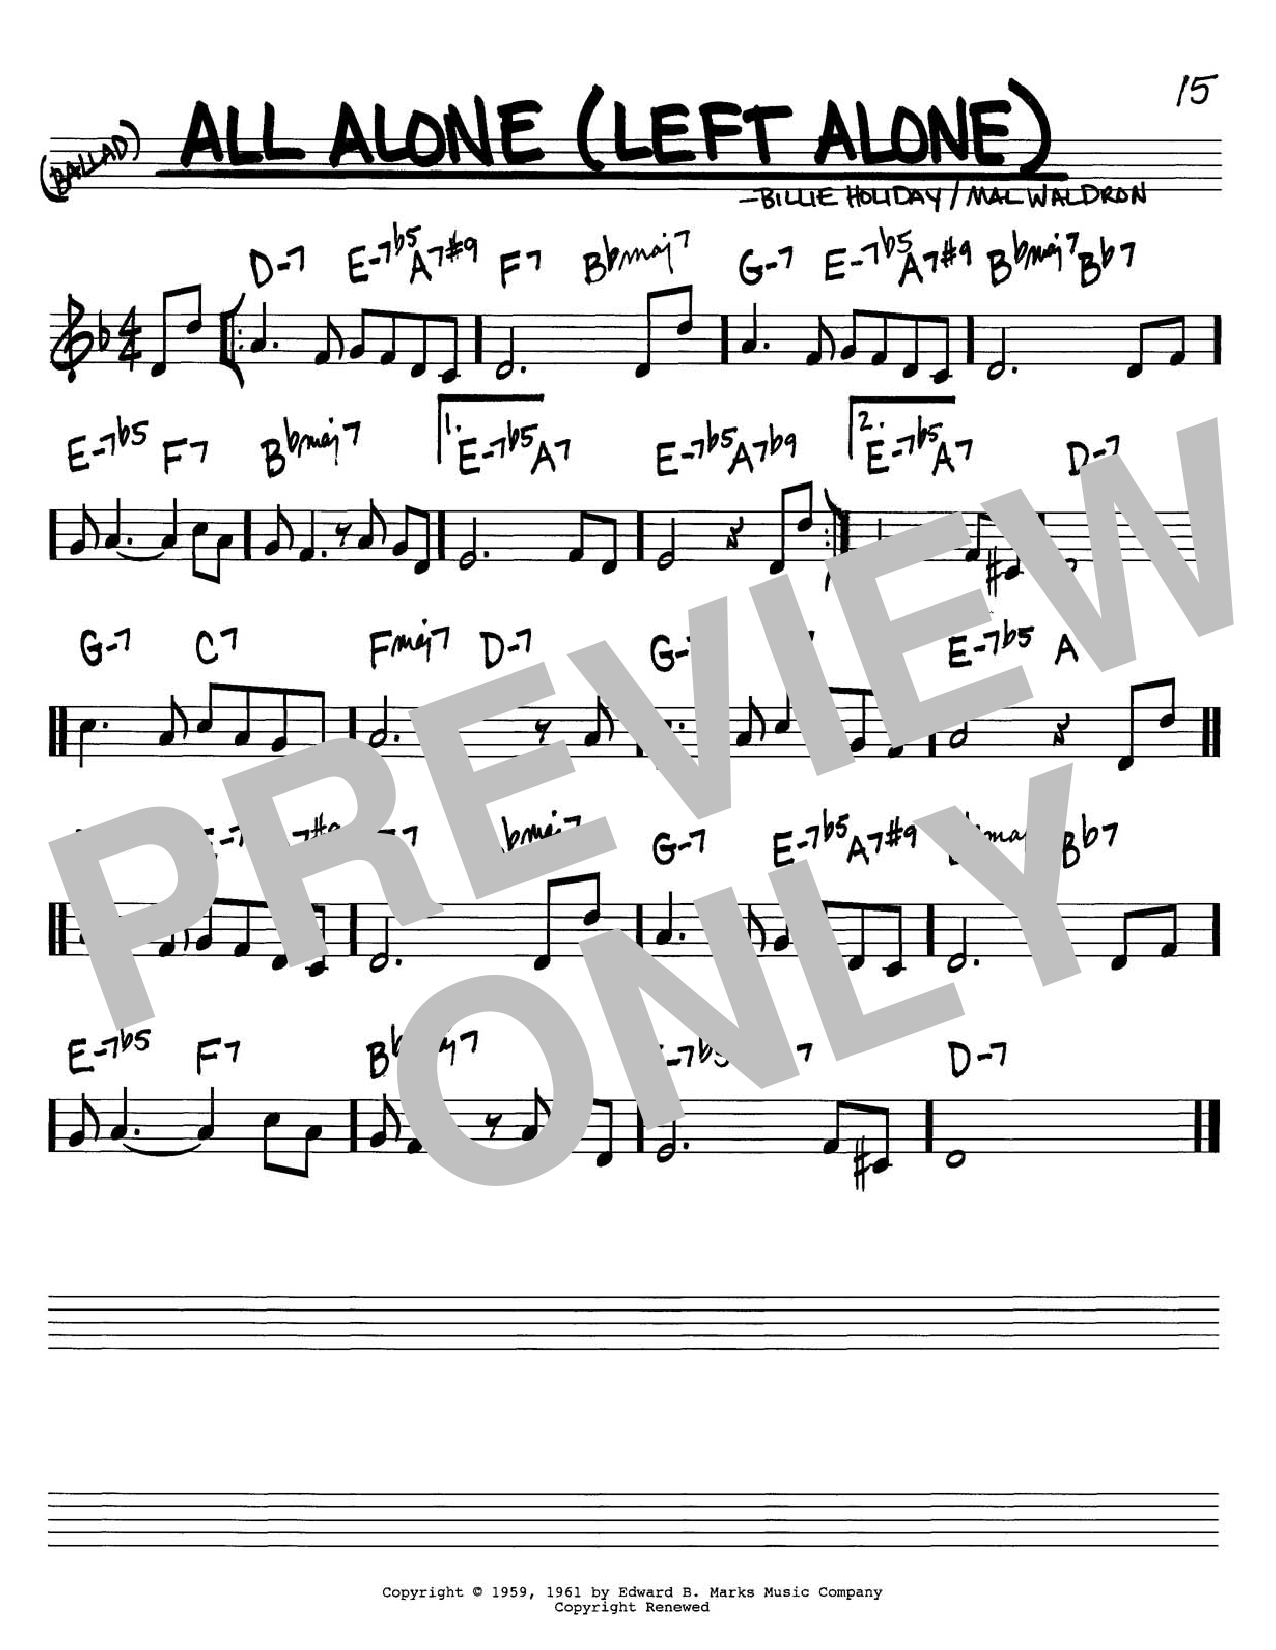 Billie Holiday All Alone (Left Alone) sheet music notes and chords. Download Printable PDF.